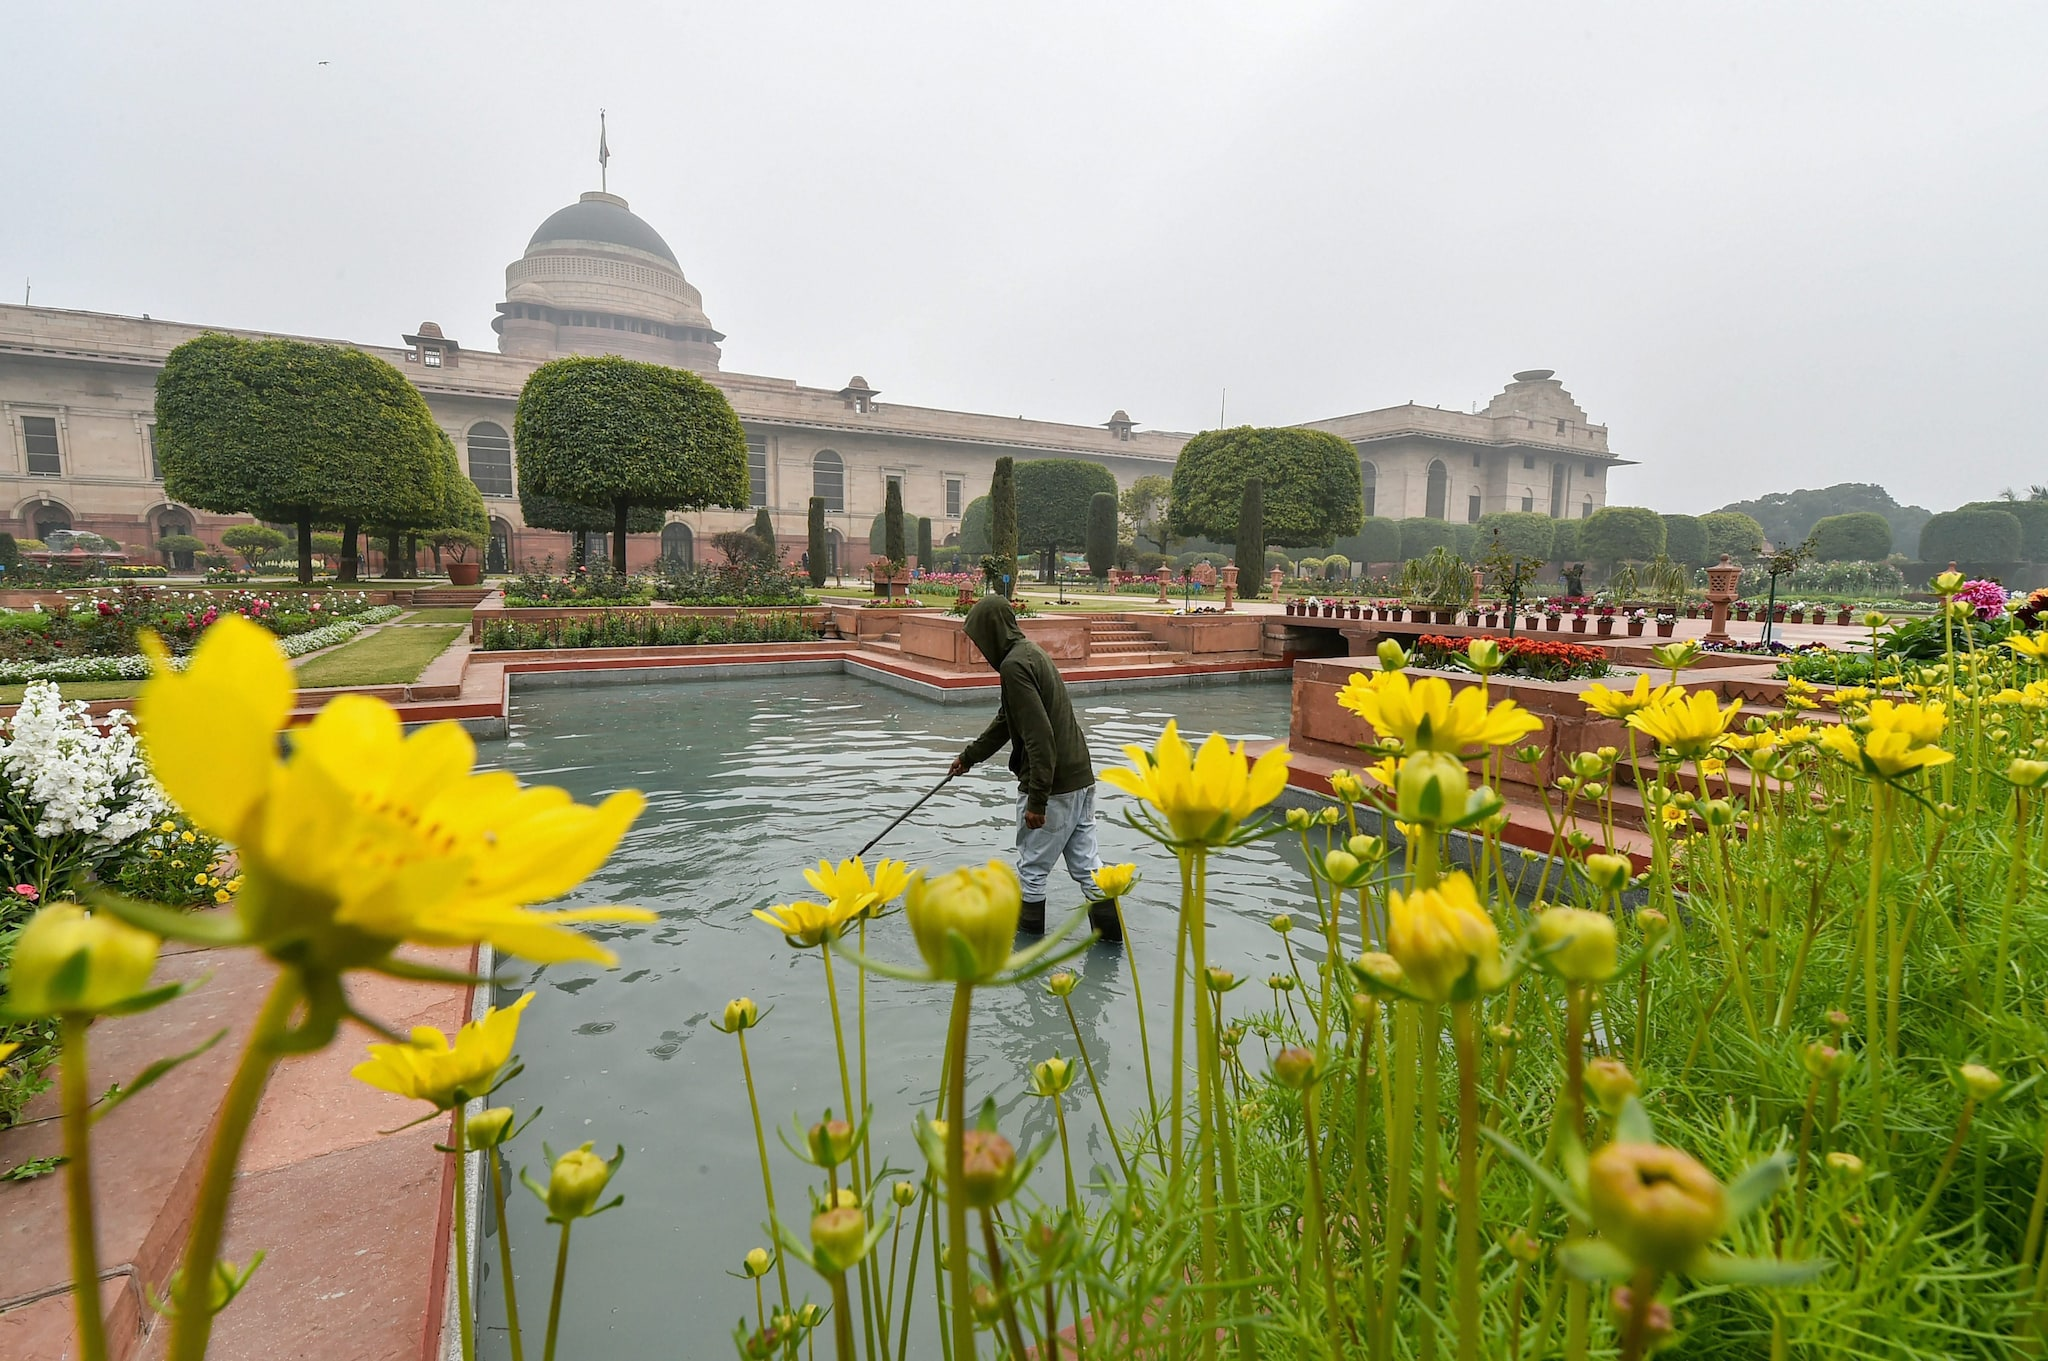 A worker cleans a pond as the flowers bloom at the Mughal Gardens of Rashtrapati Bhavan in New Delhi, Saturday, Feb 2, 2019.